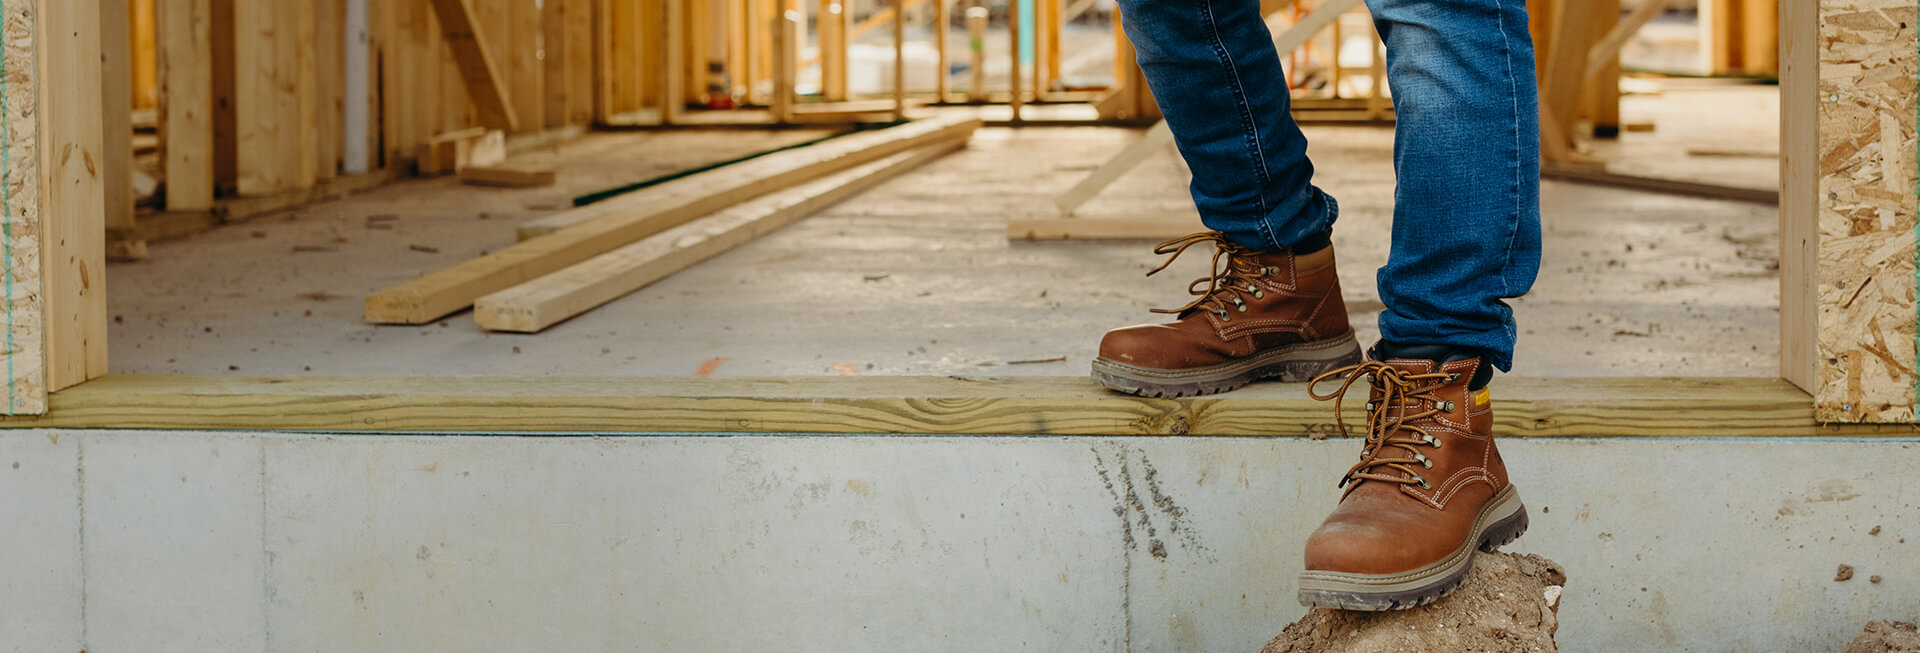 A person wearing tan, ankle-height boots steps down out of a new home under construction.